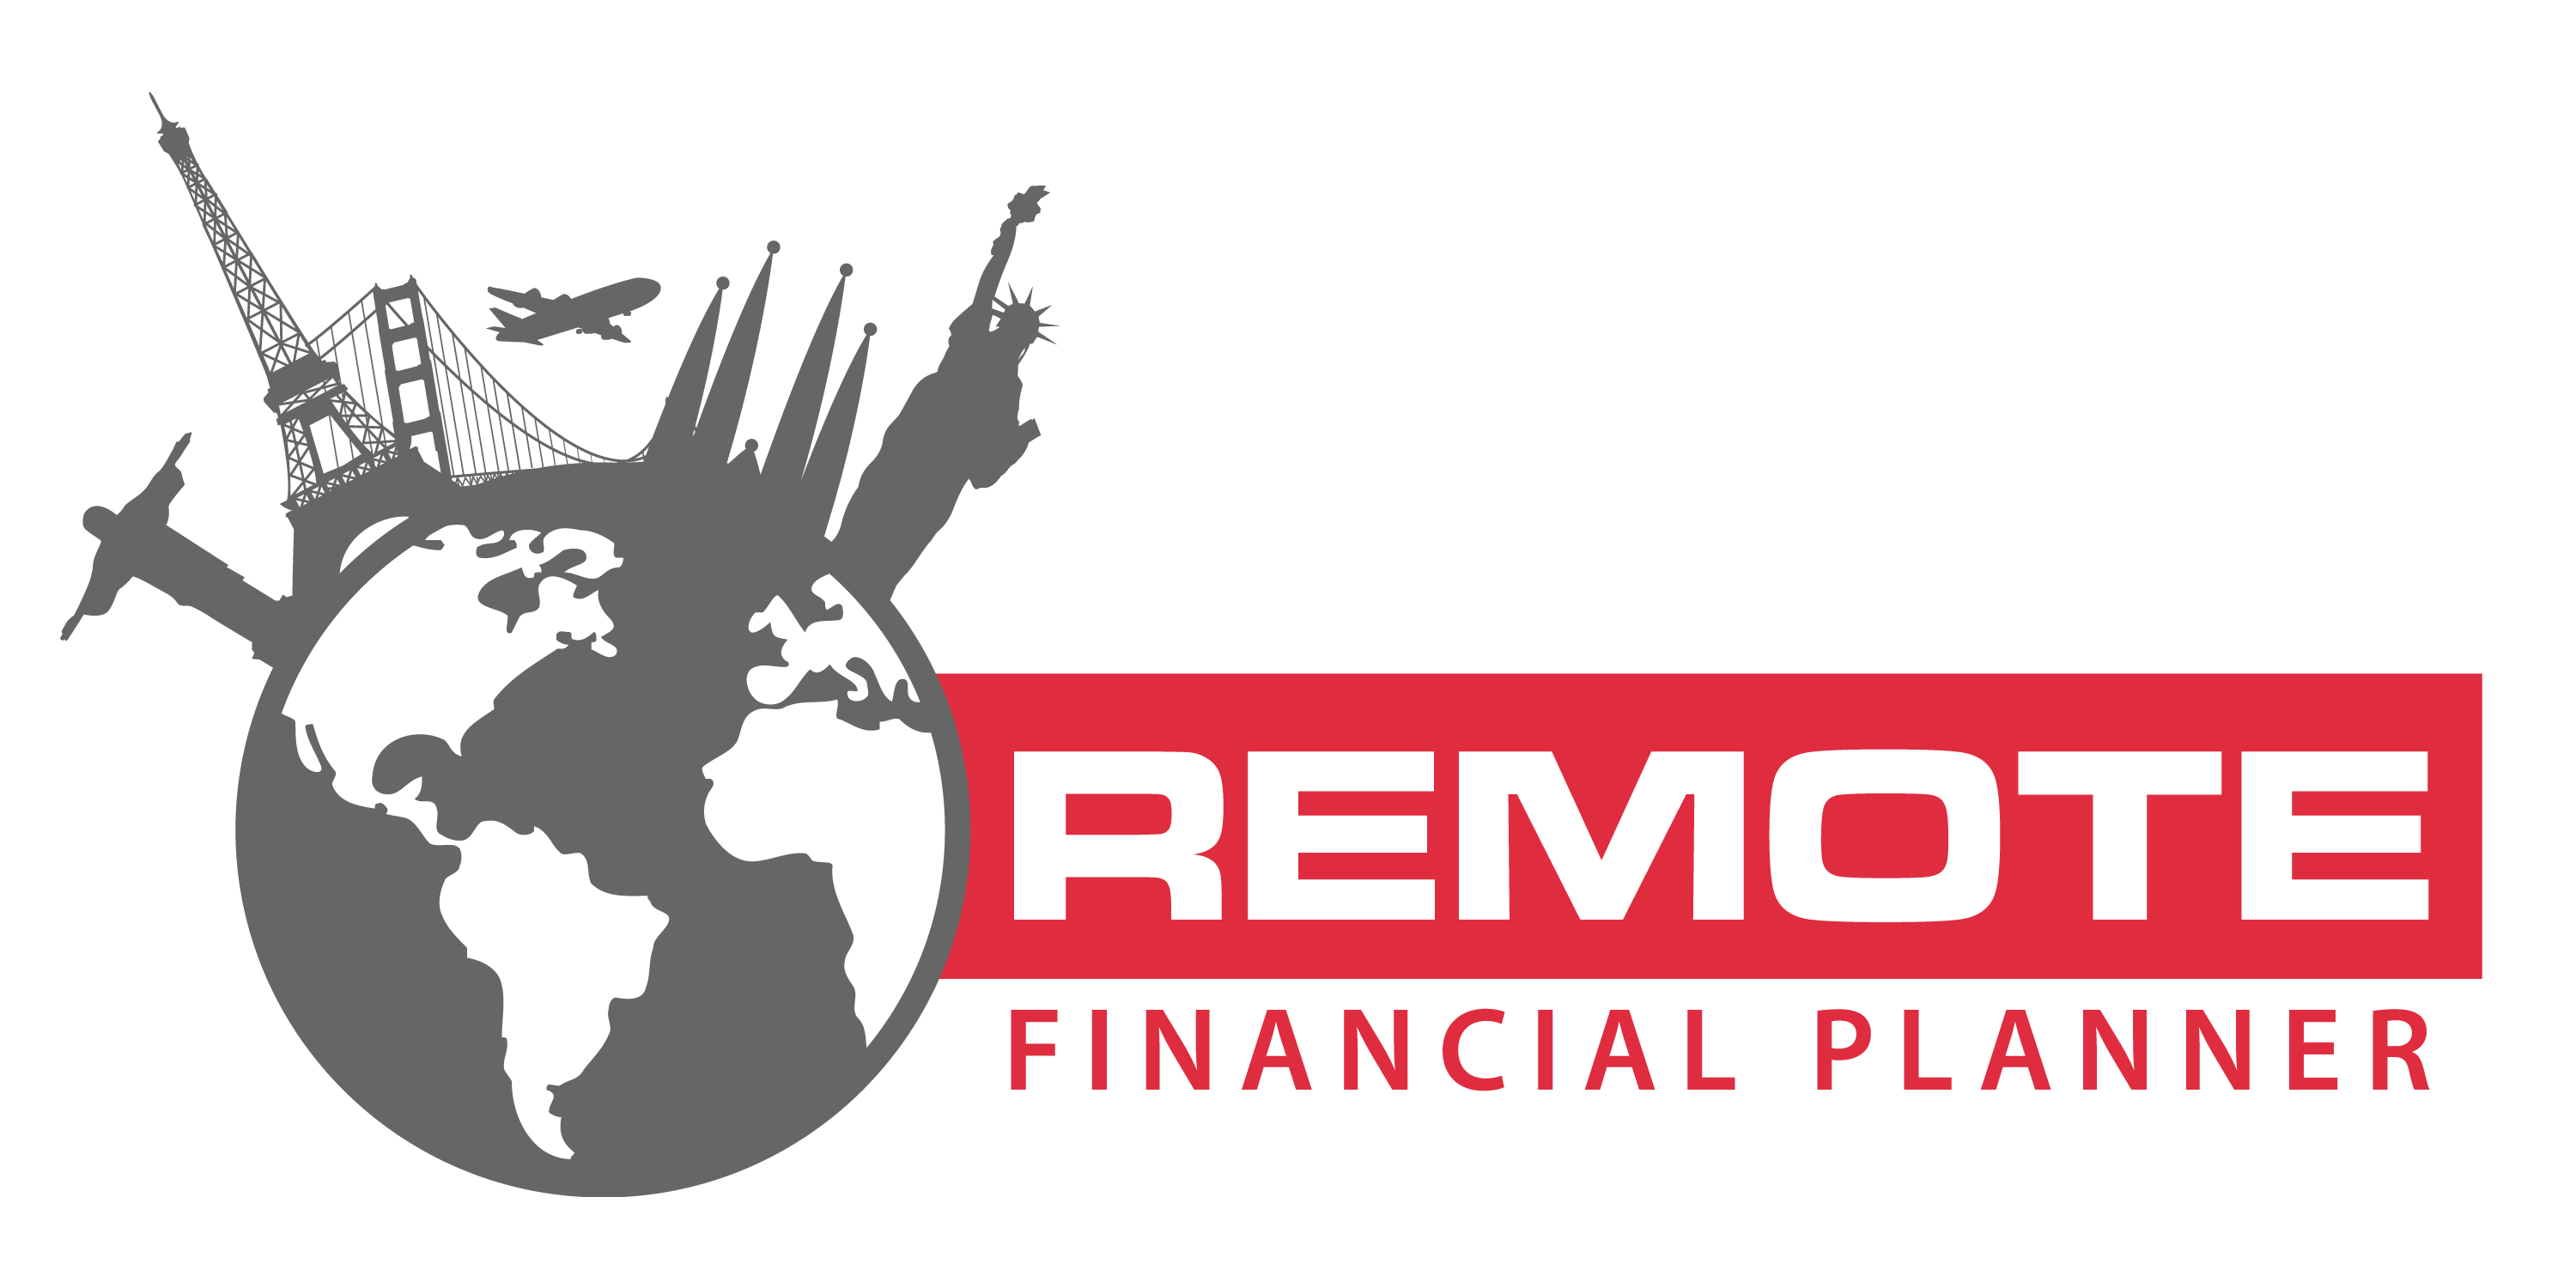 Remote financial planner independence. Planning clipart long term plan